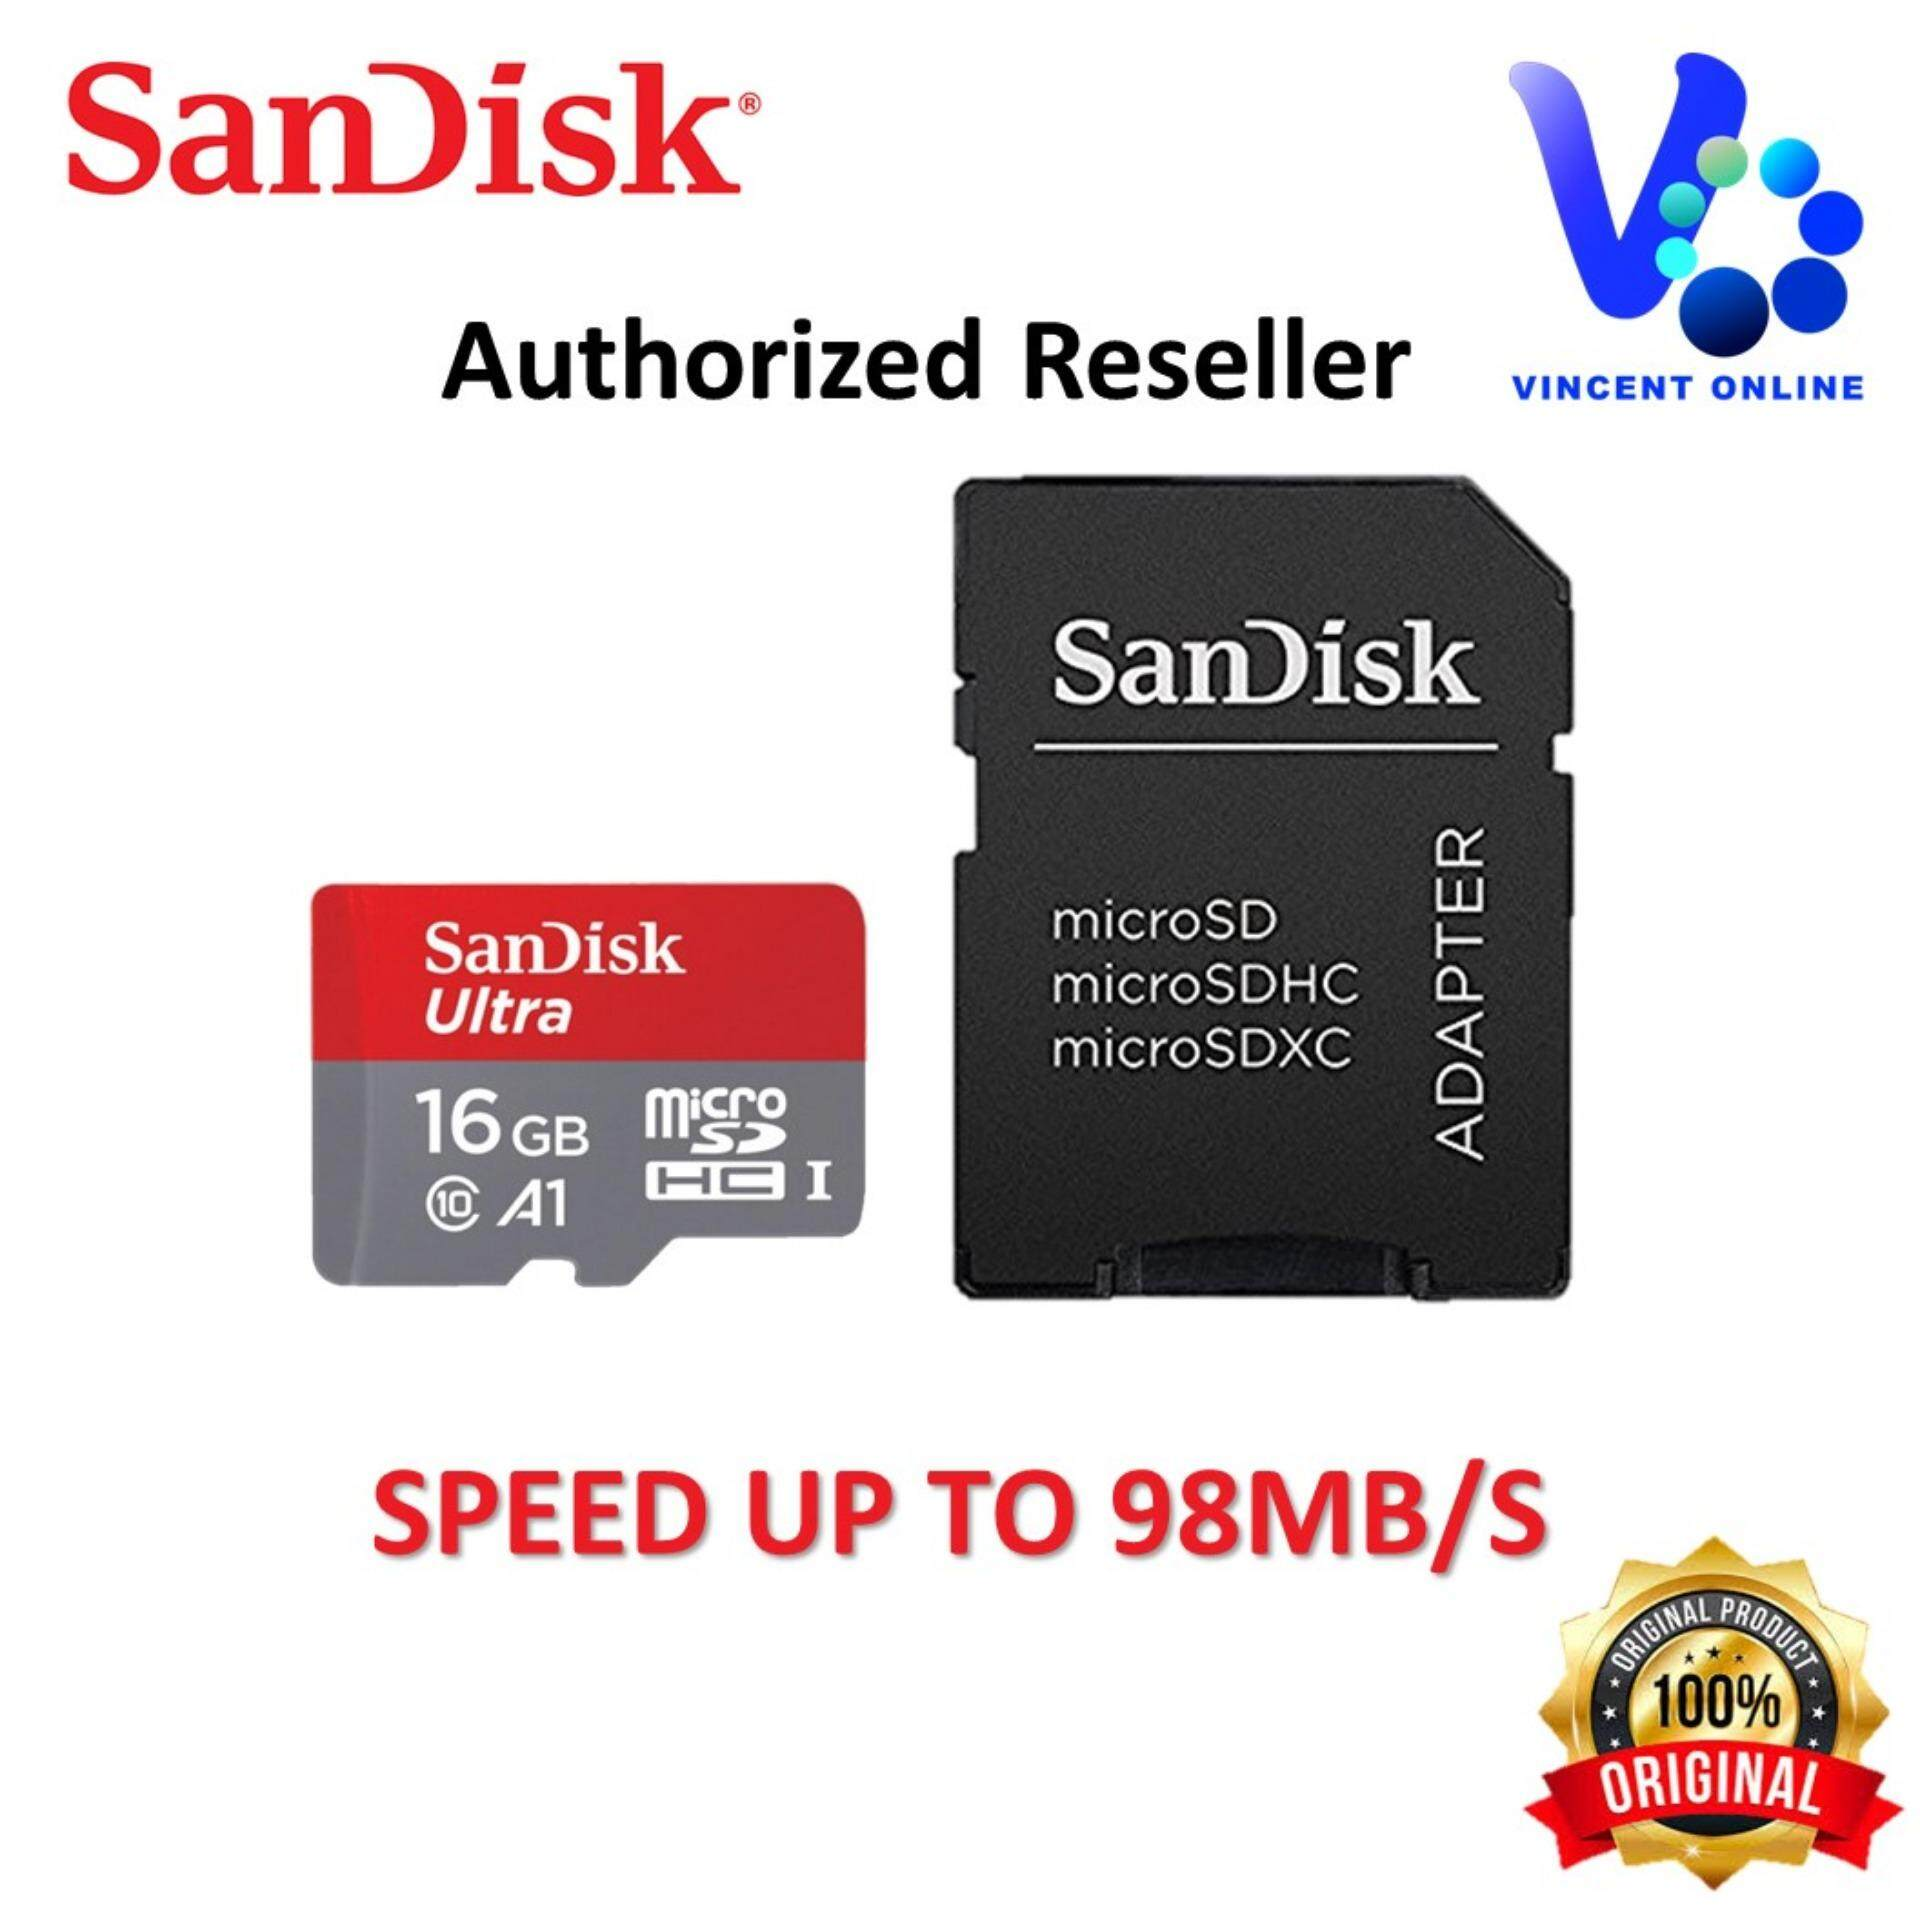 Sell Sandisk Ultra 16gb Cheapest Best Quality My Store Fit Usb 31 130mb S Cz430 Myr 20